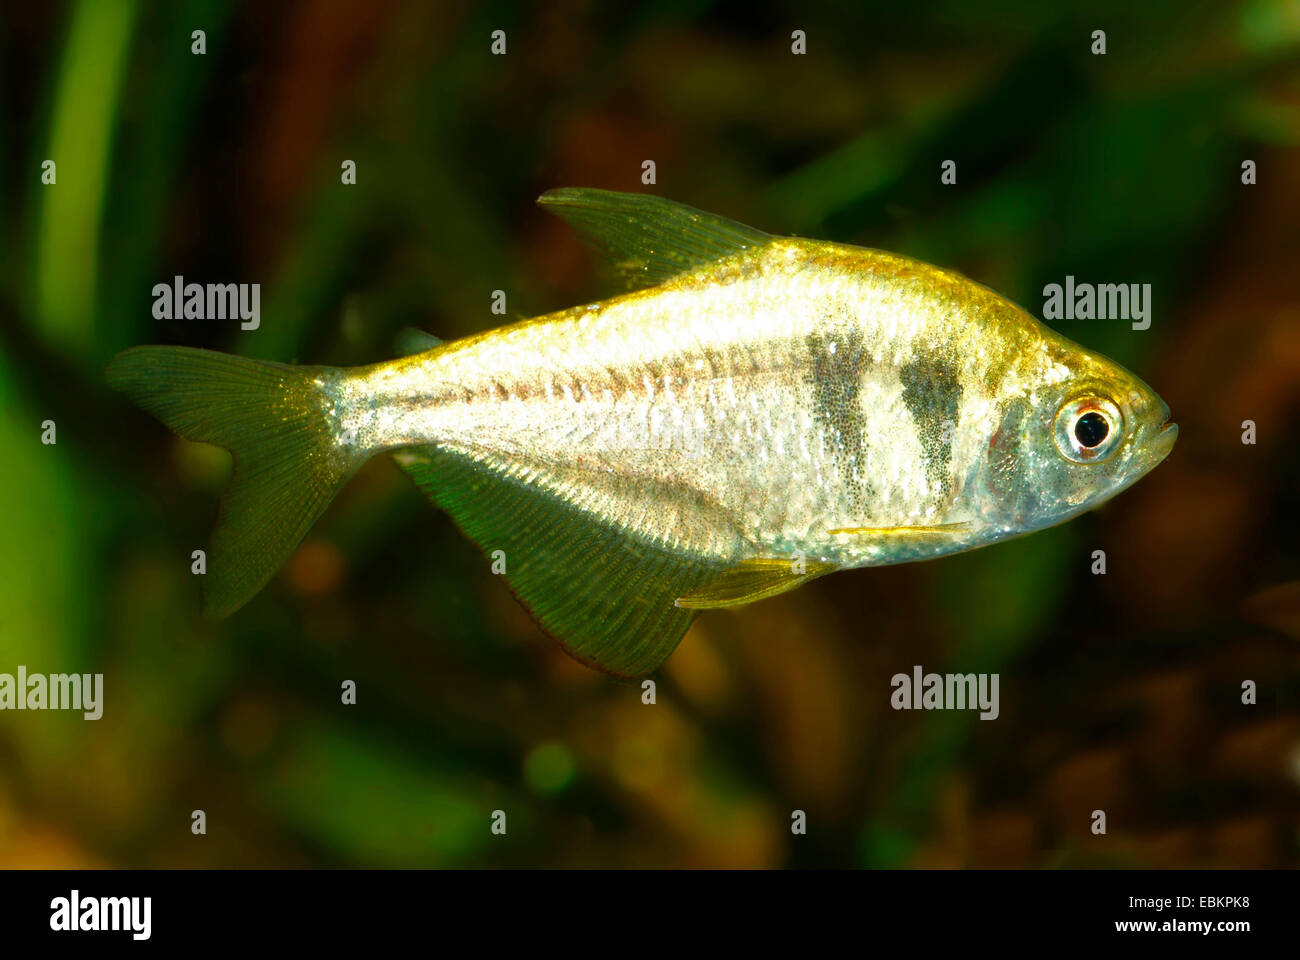 Fish Names In Alphabetical Order